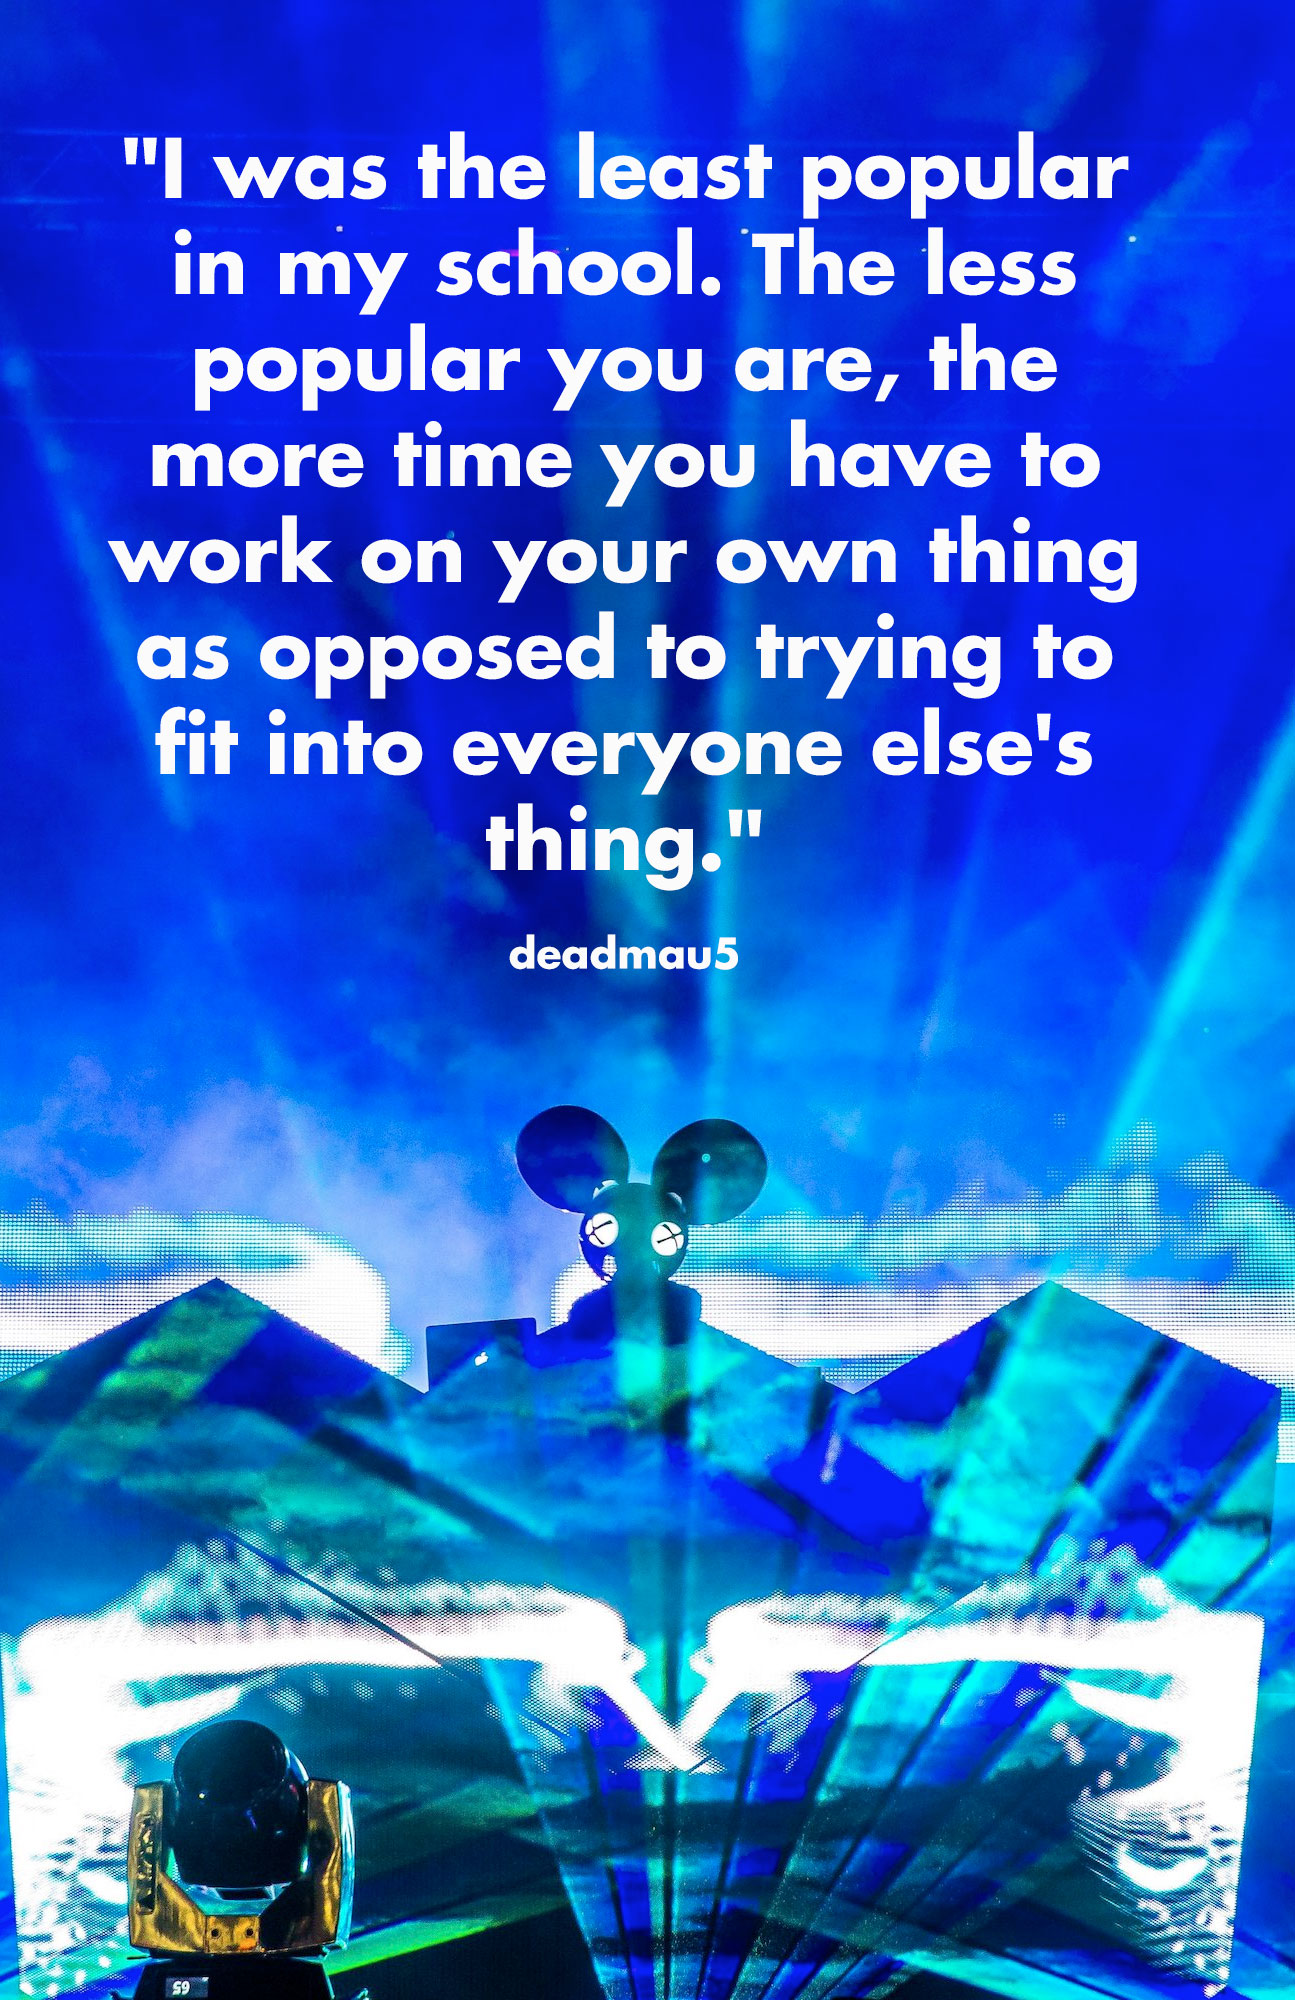 [Image] A quote from one of my favorite music producers, Joel Zimmerman (deadmau5)